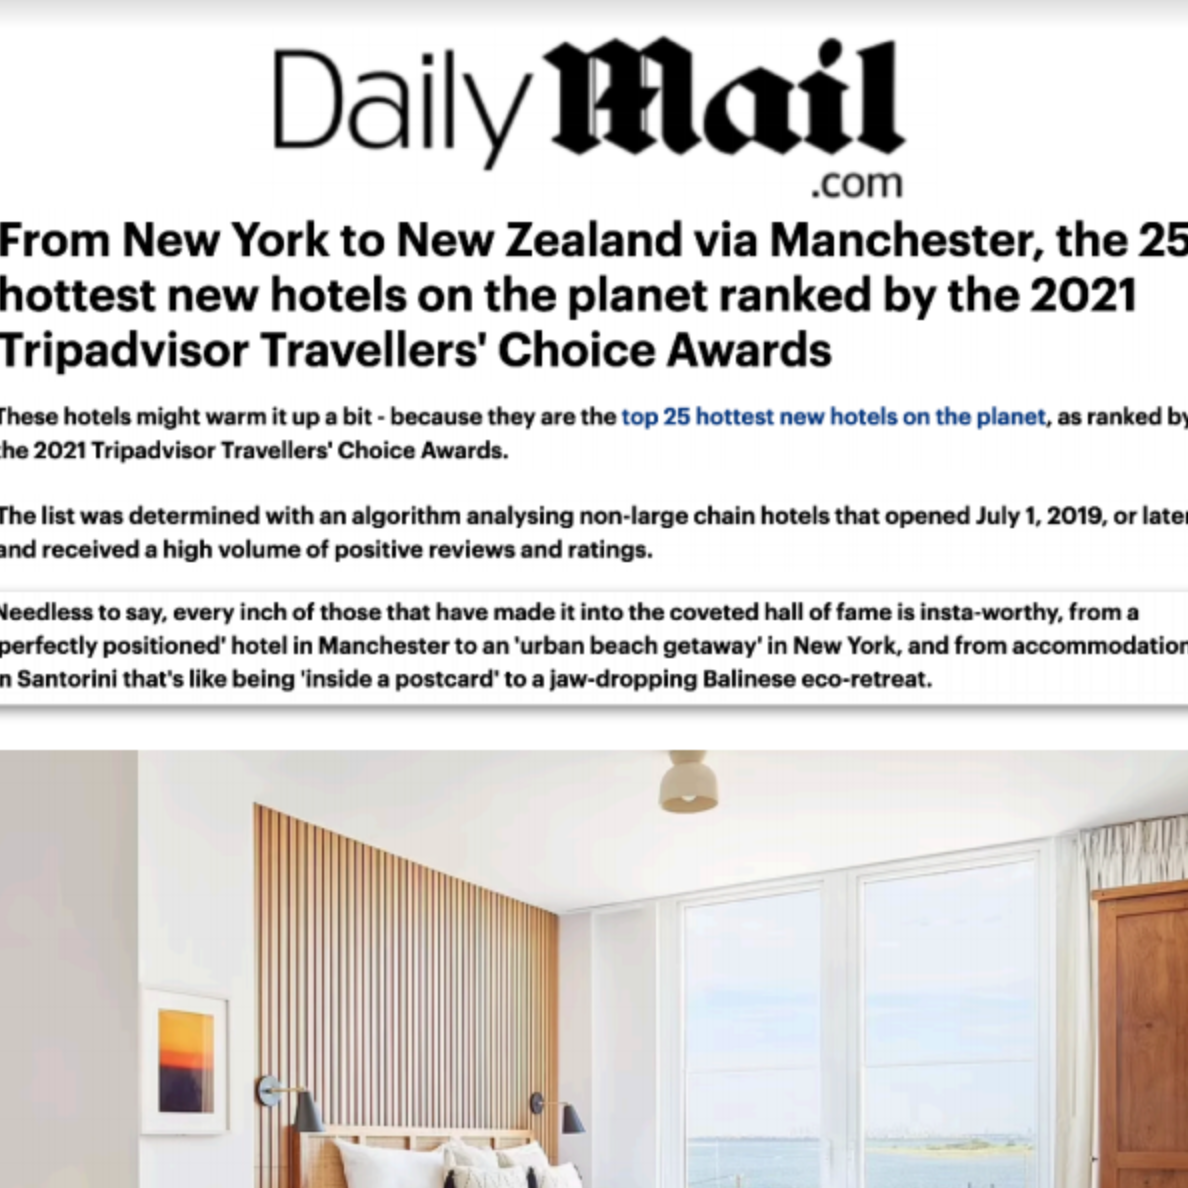 Article about The Rockaway Hotel in Daily Mail